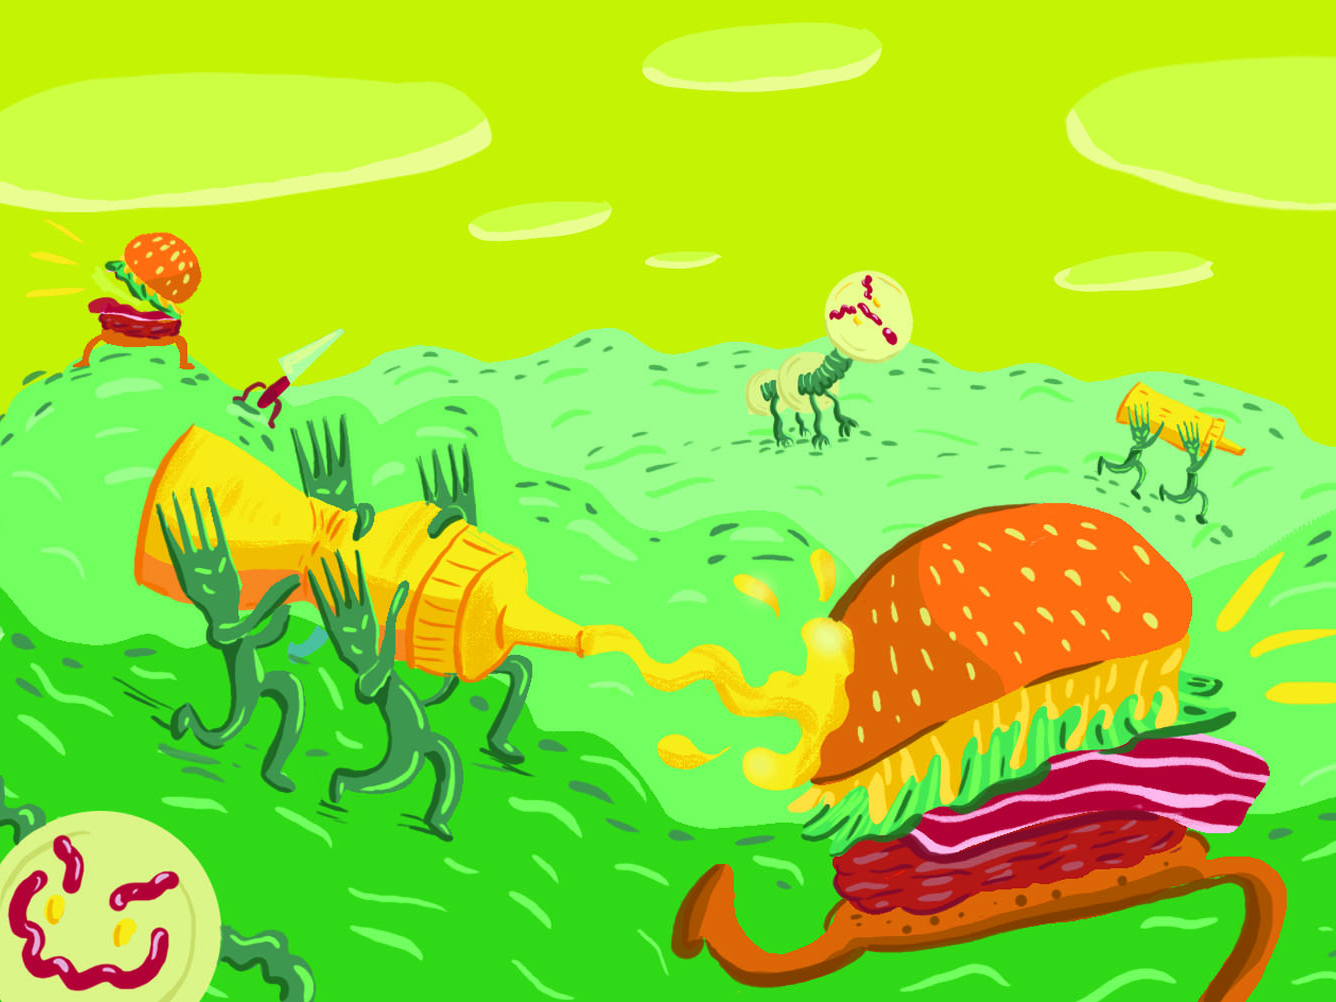 Burger Craze funny character cartoon burgers digital illustration